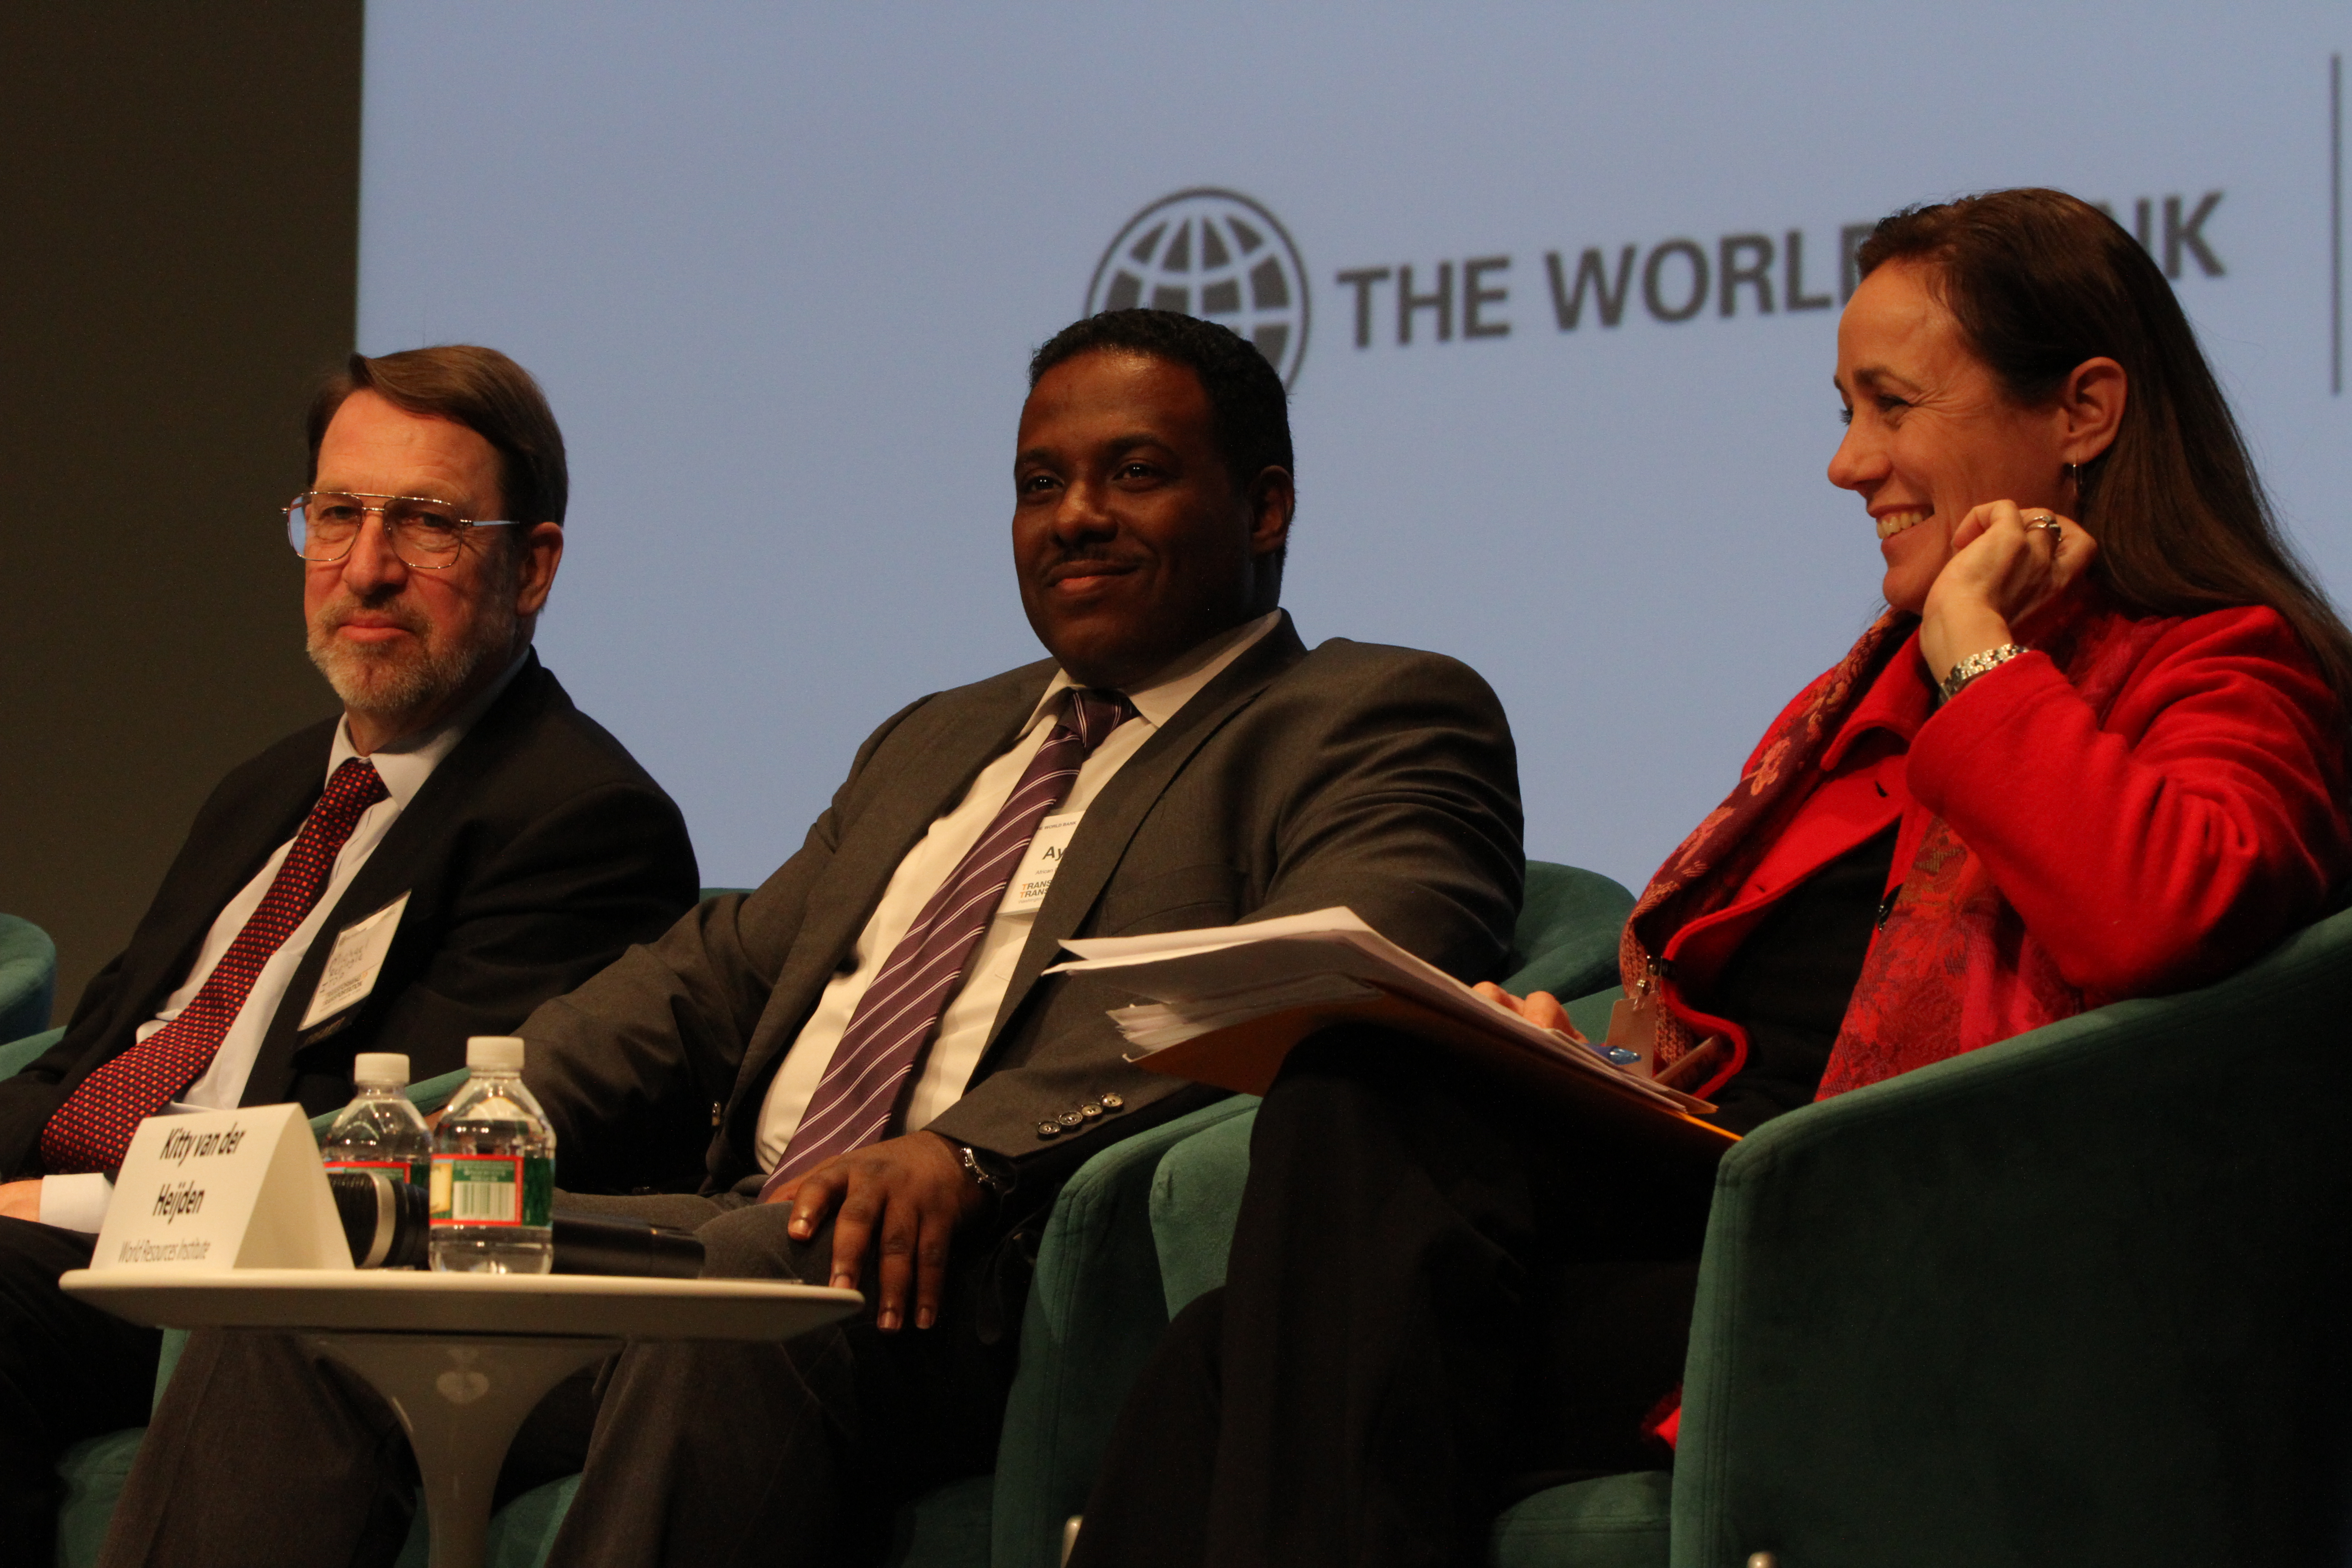 """Panelists during the """"Sustainable Development Goals and Transport"""" plenary at Transforming Transportation 2014. Photo by Aaron Minnick/EMBARQ."""